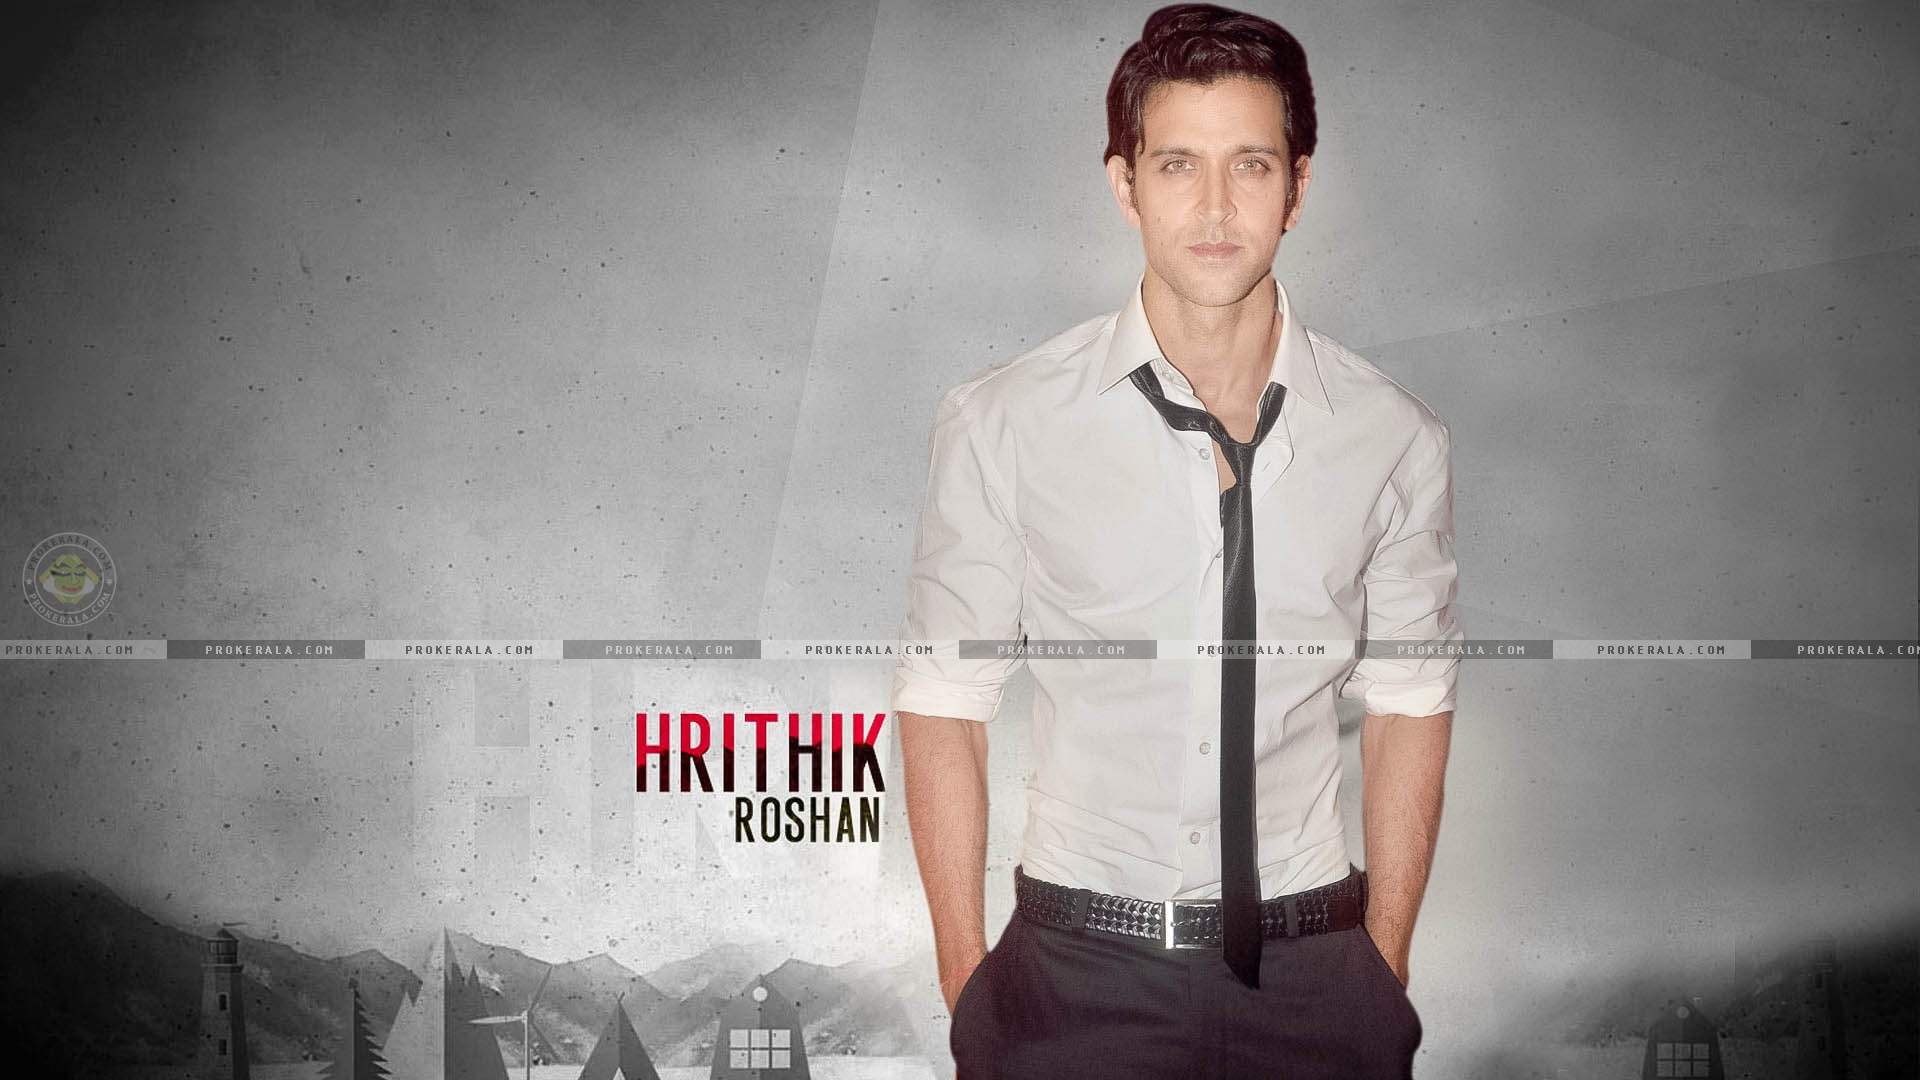 Hrithik roshan wallpapers high resolution and quality download - Hrithik hd pic ...